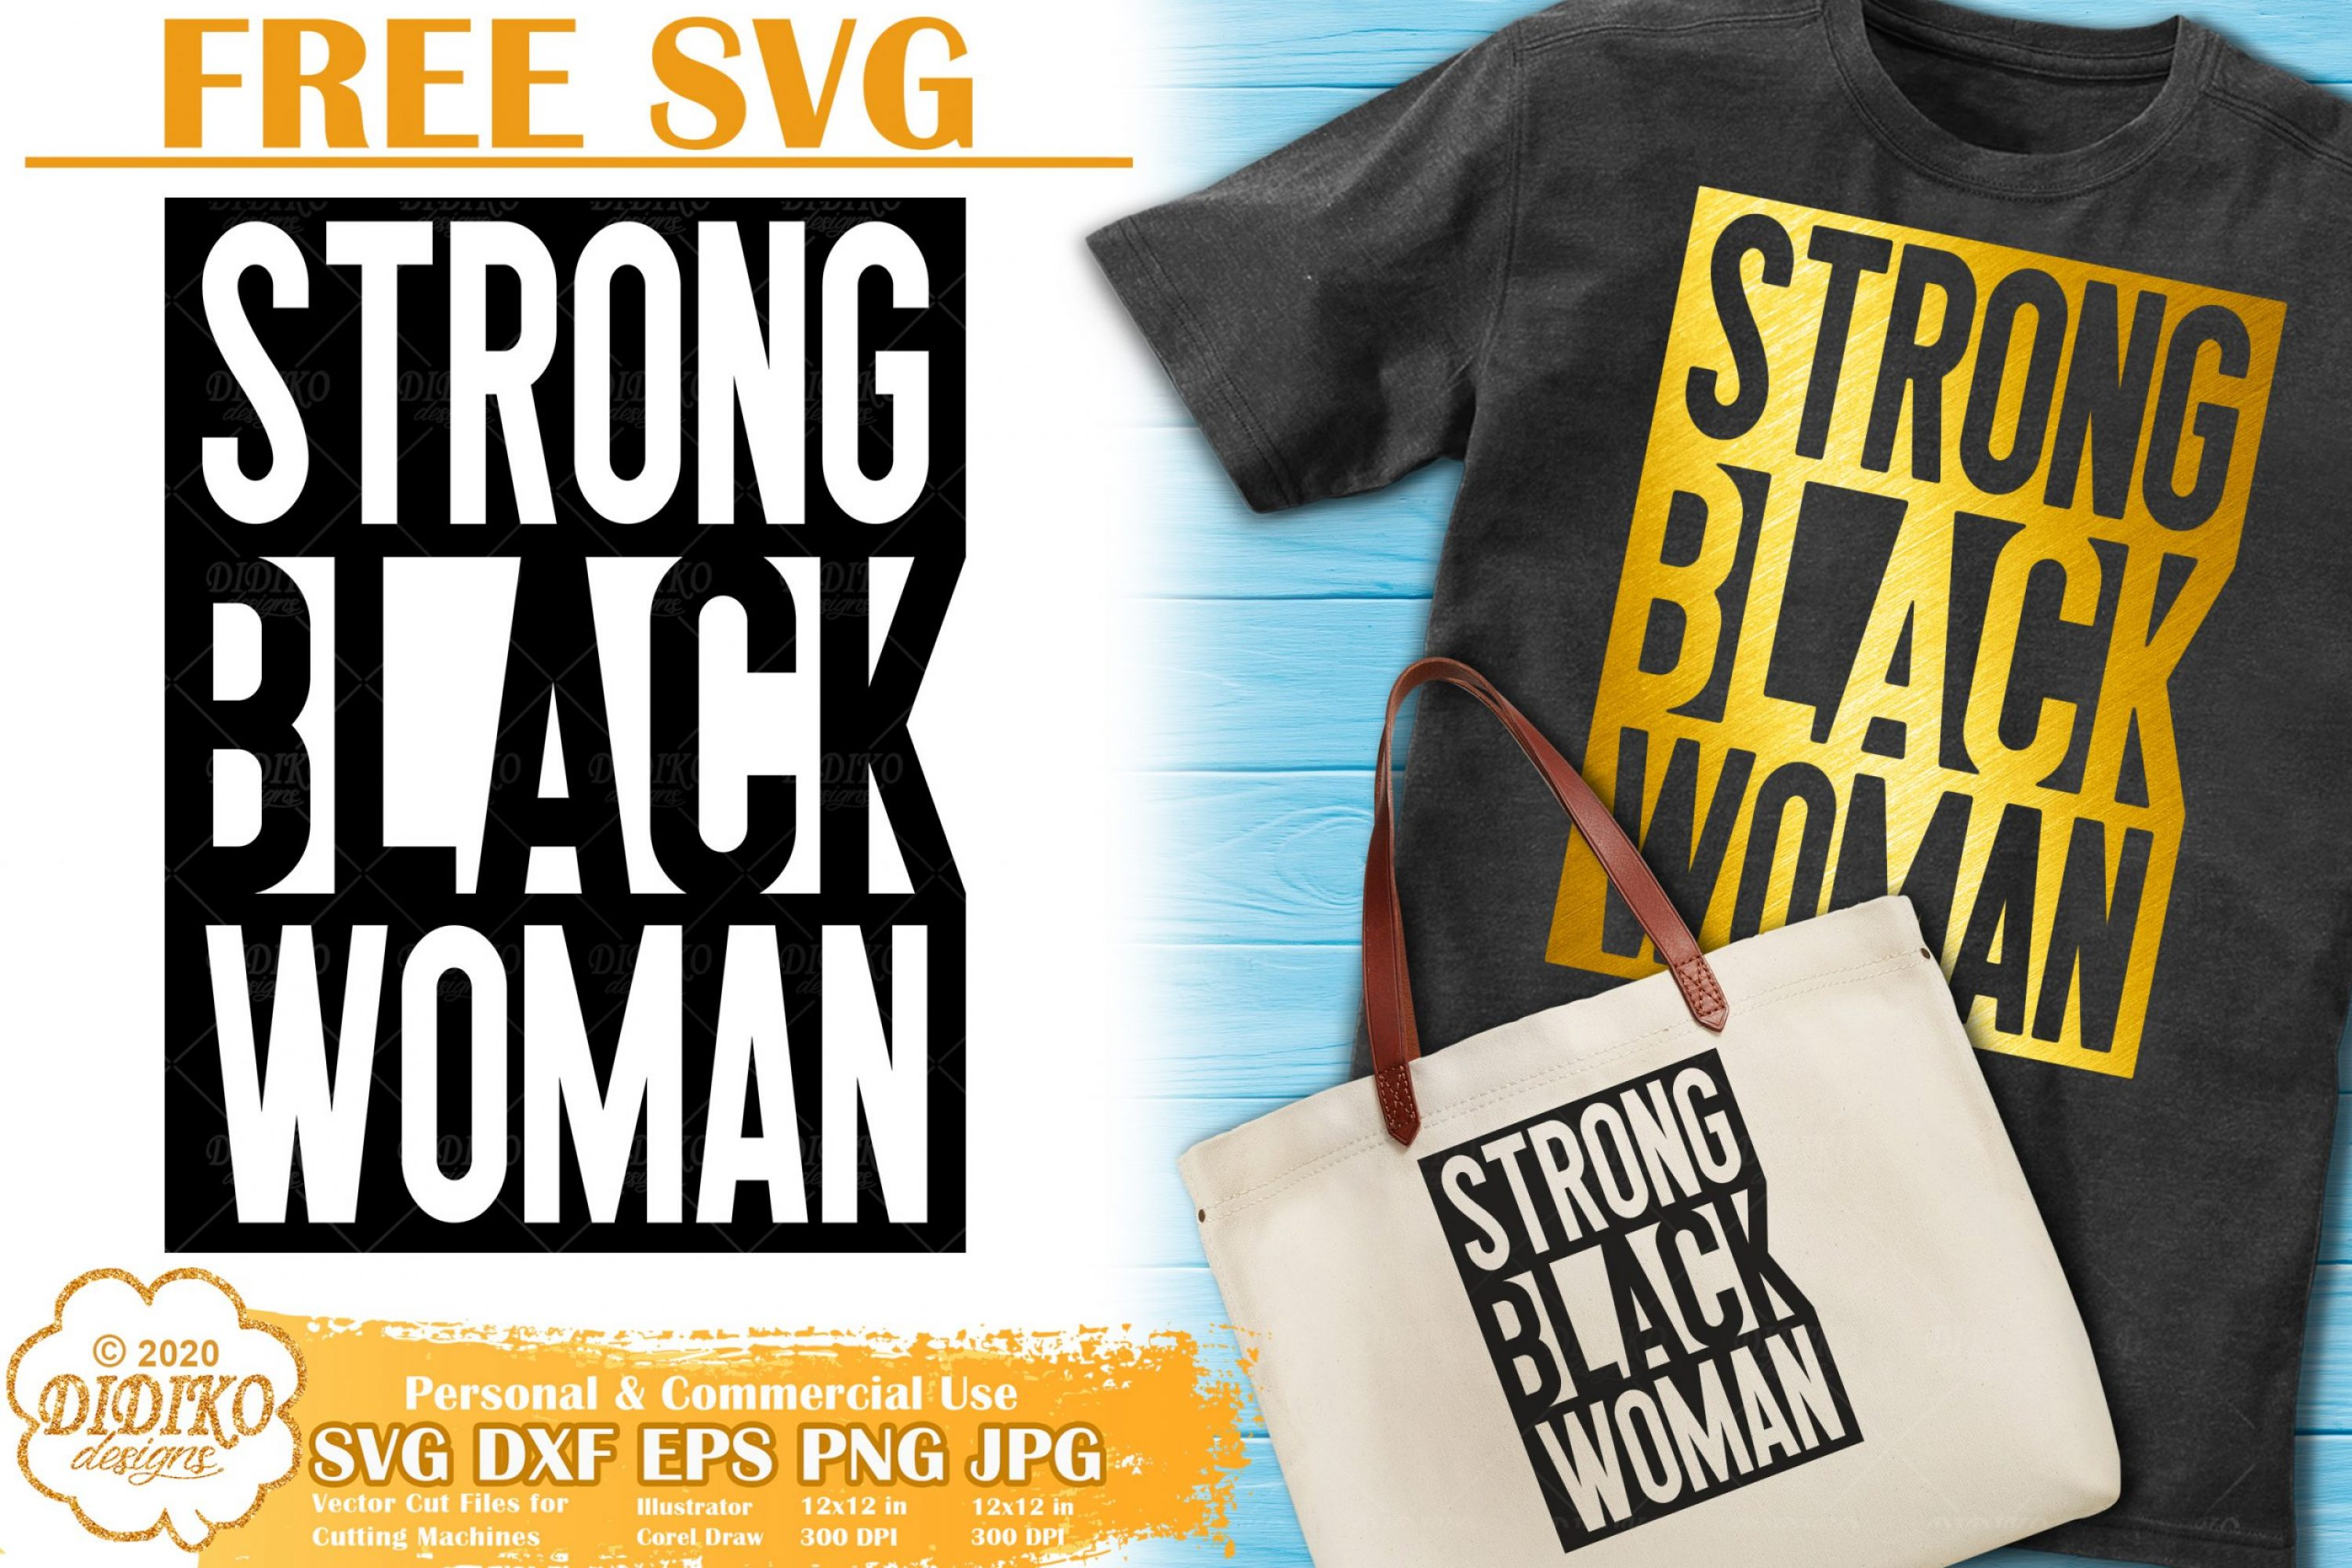 Black Woman SVG Free | Strong woman svg | Girl power